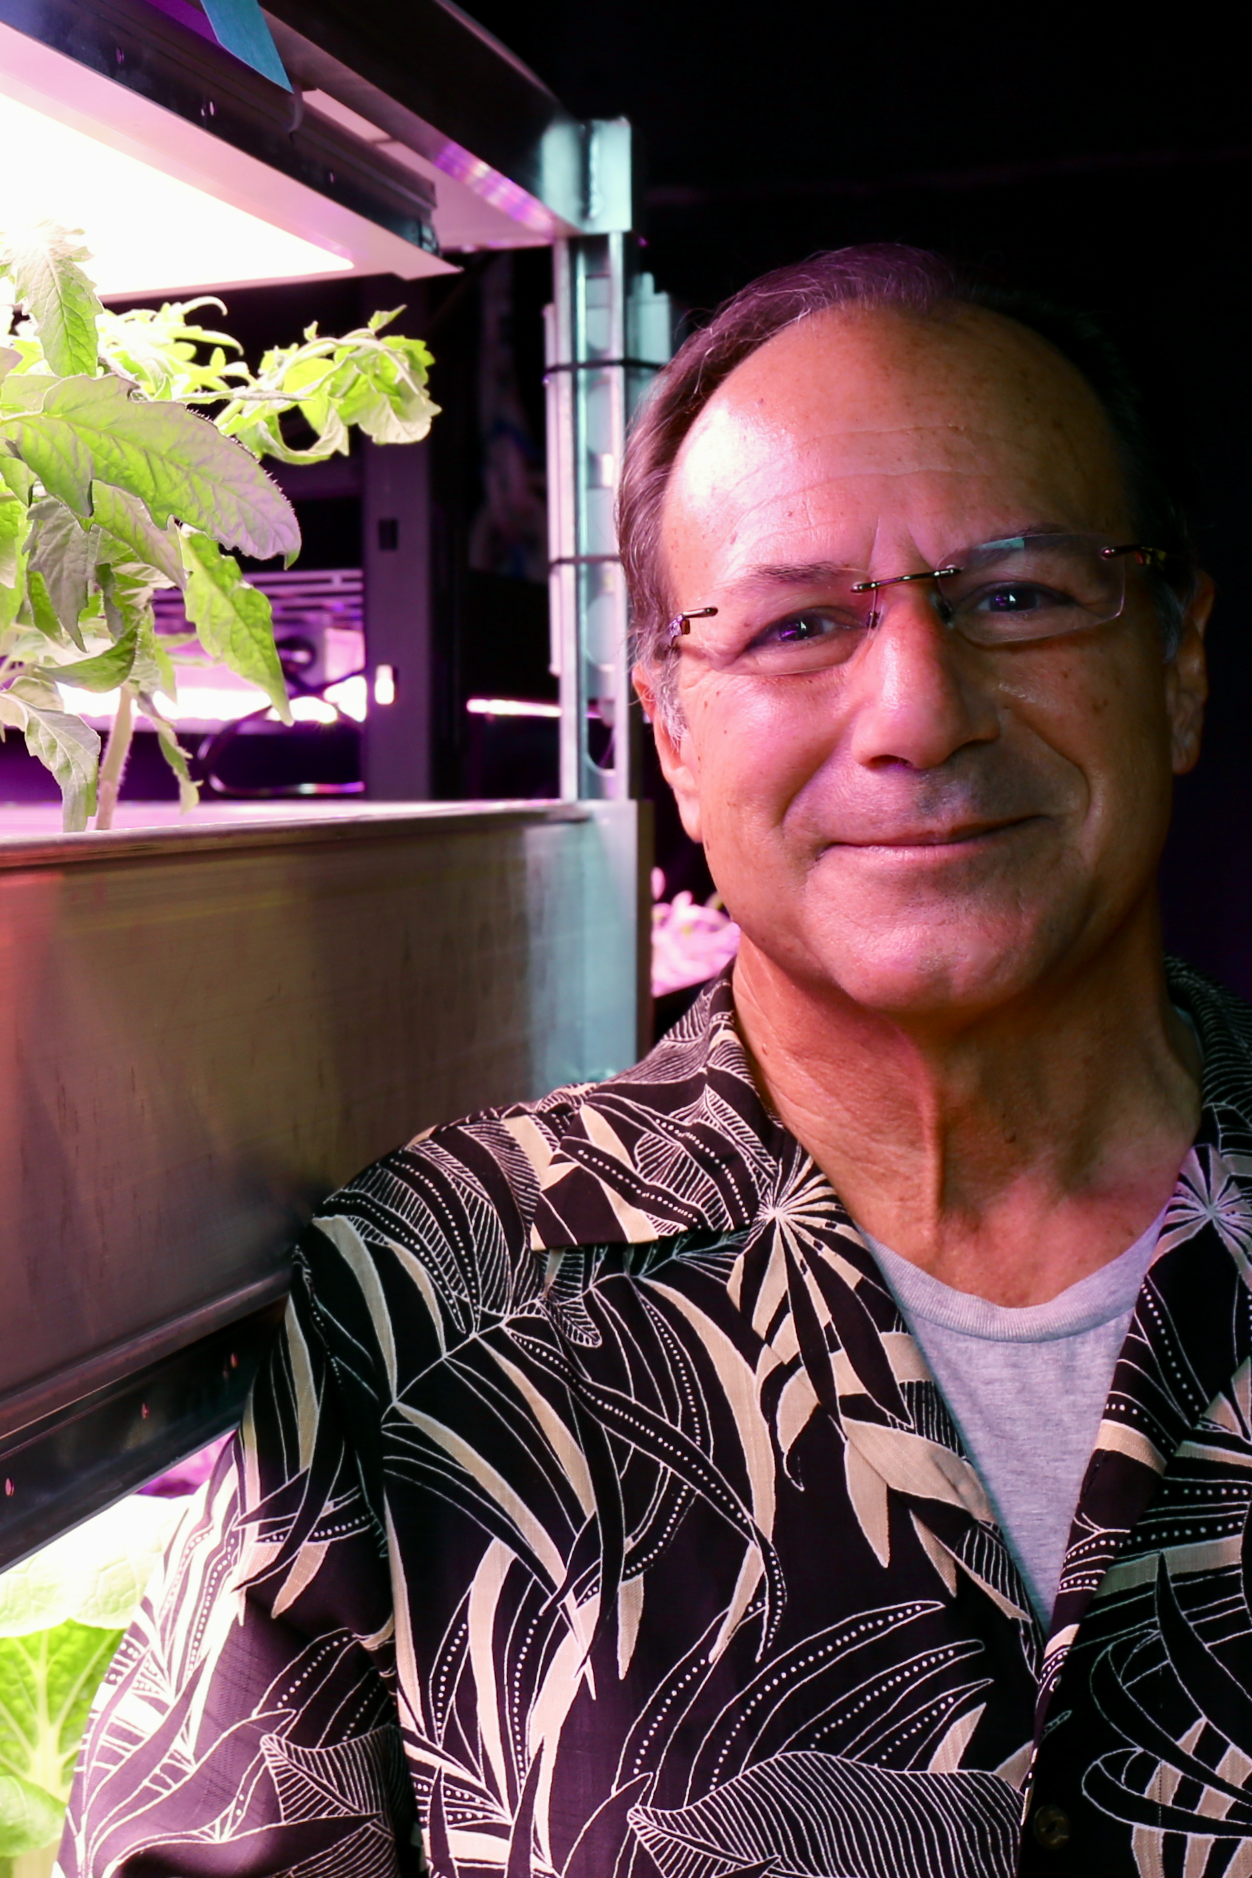 Stop by Agritecture during NYC AgTech Week to meet Sandor and see the lights in person.